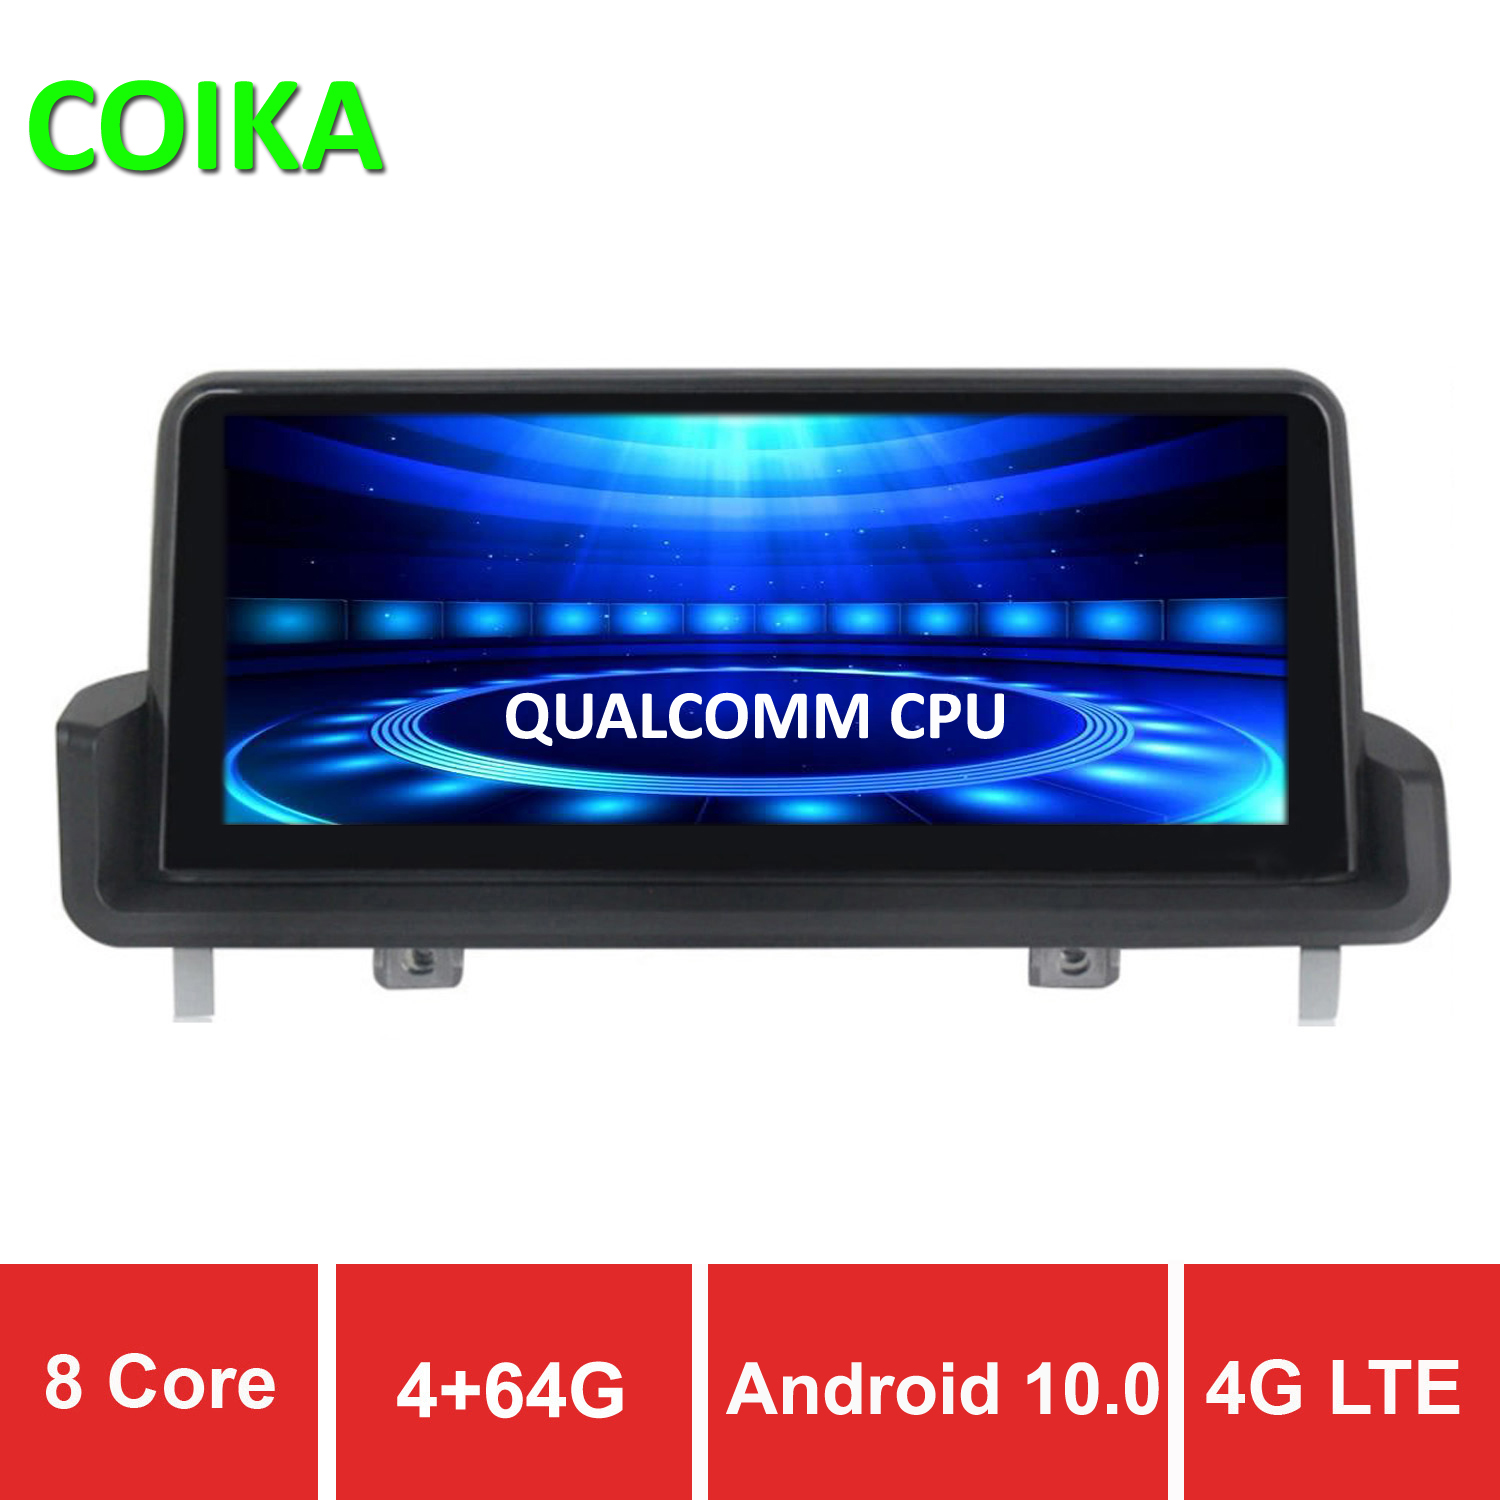 COIKA 8 Core Android 10 System Car Screen Player For BMW E90 E91 E92 05-12 GPS Navi Stereo WIFI 4G Google 4+64G RAM IPS Touch image